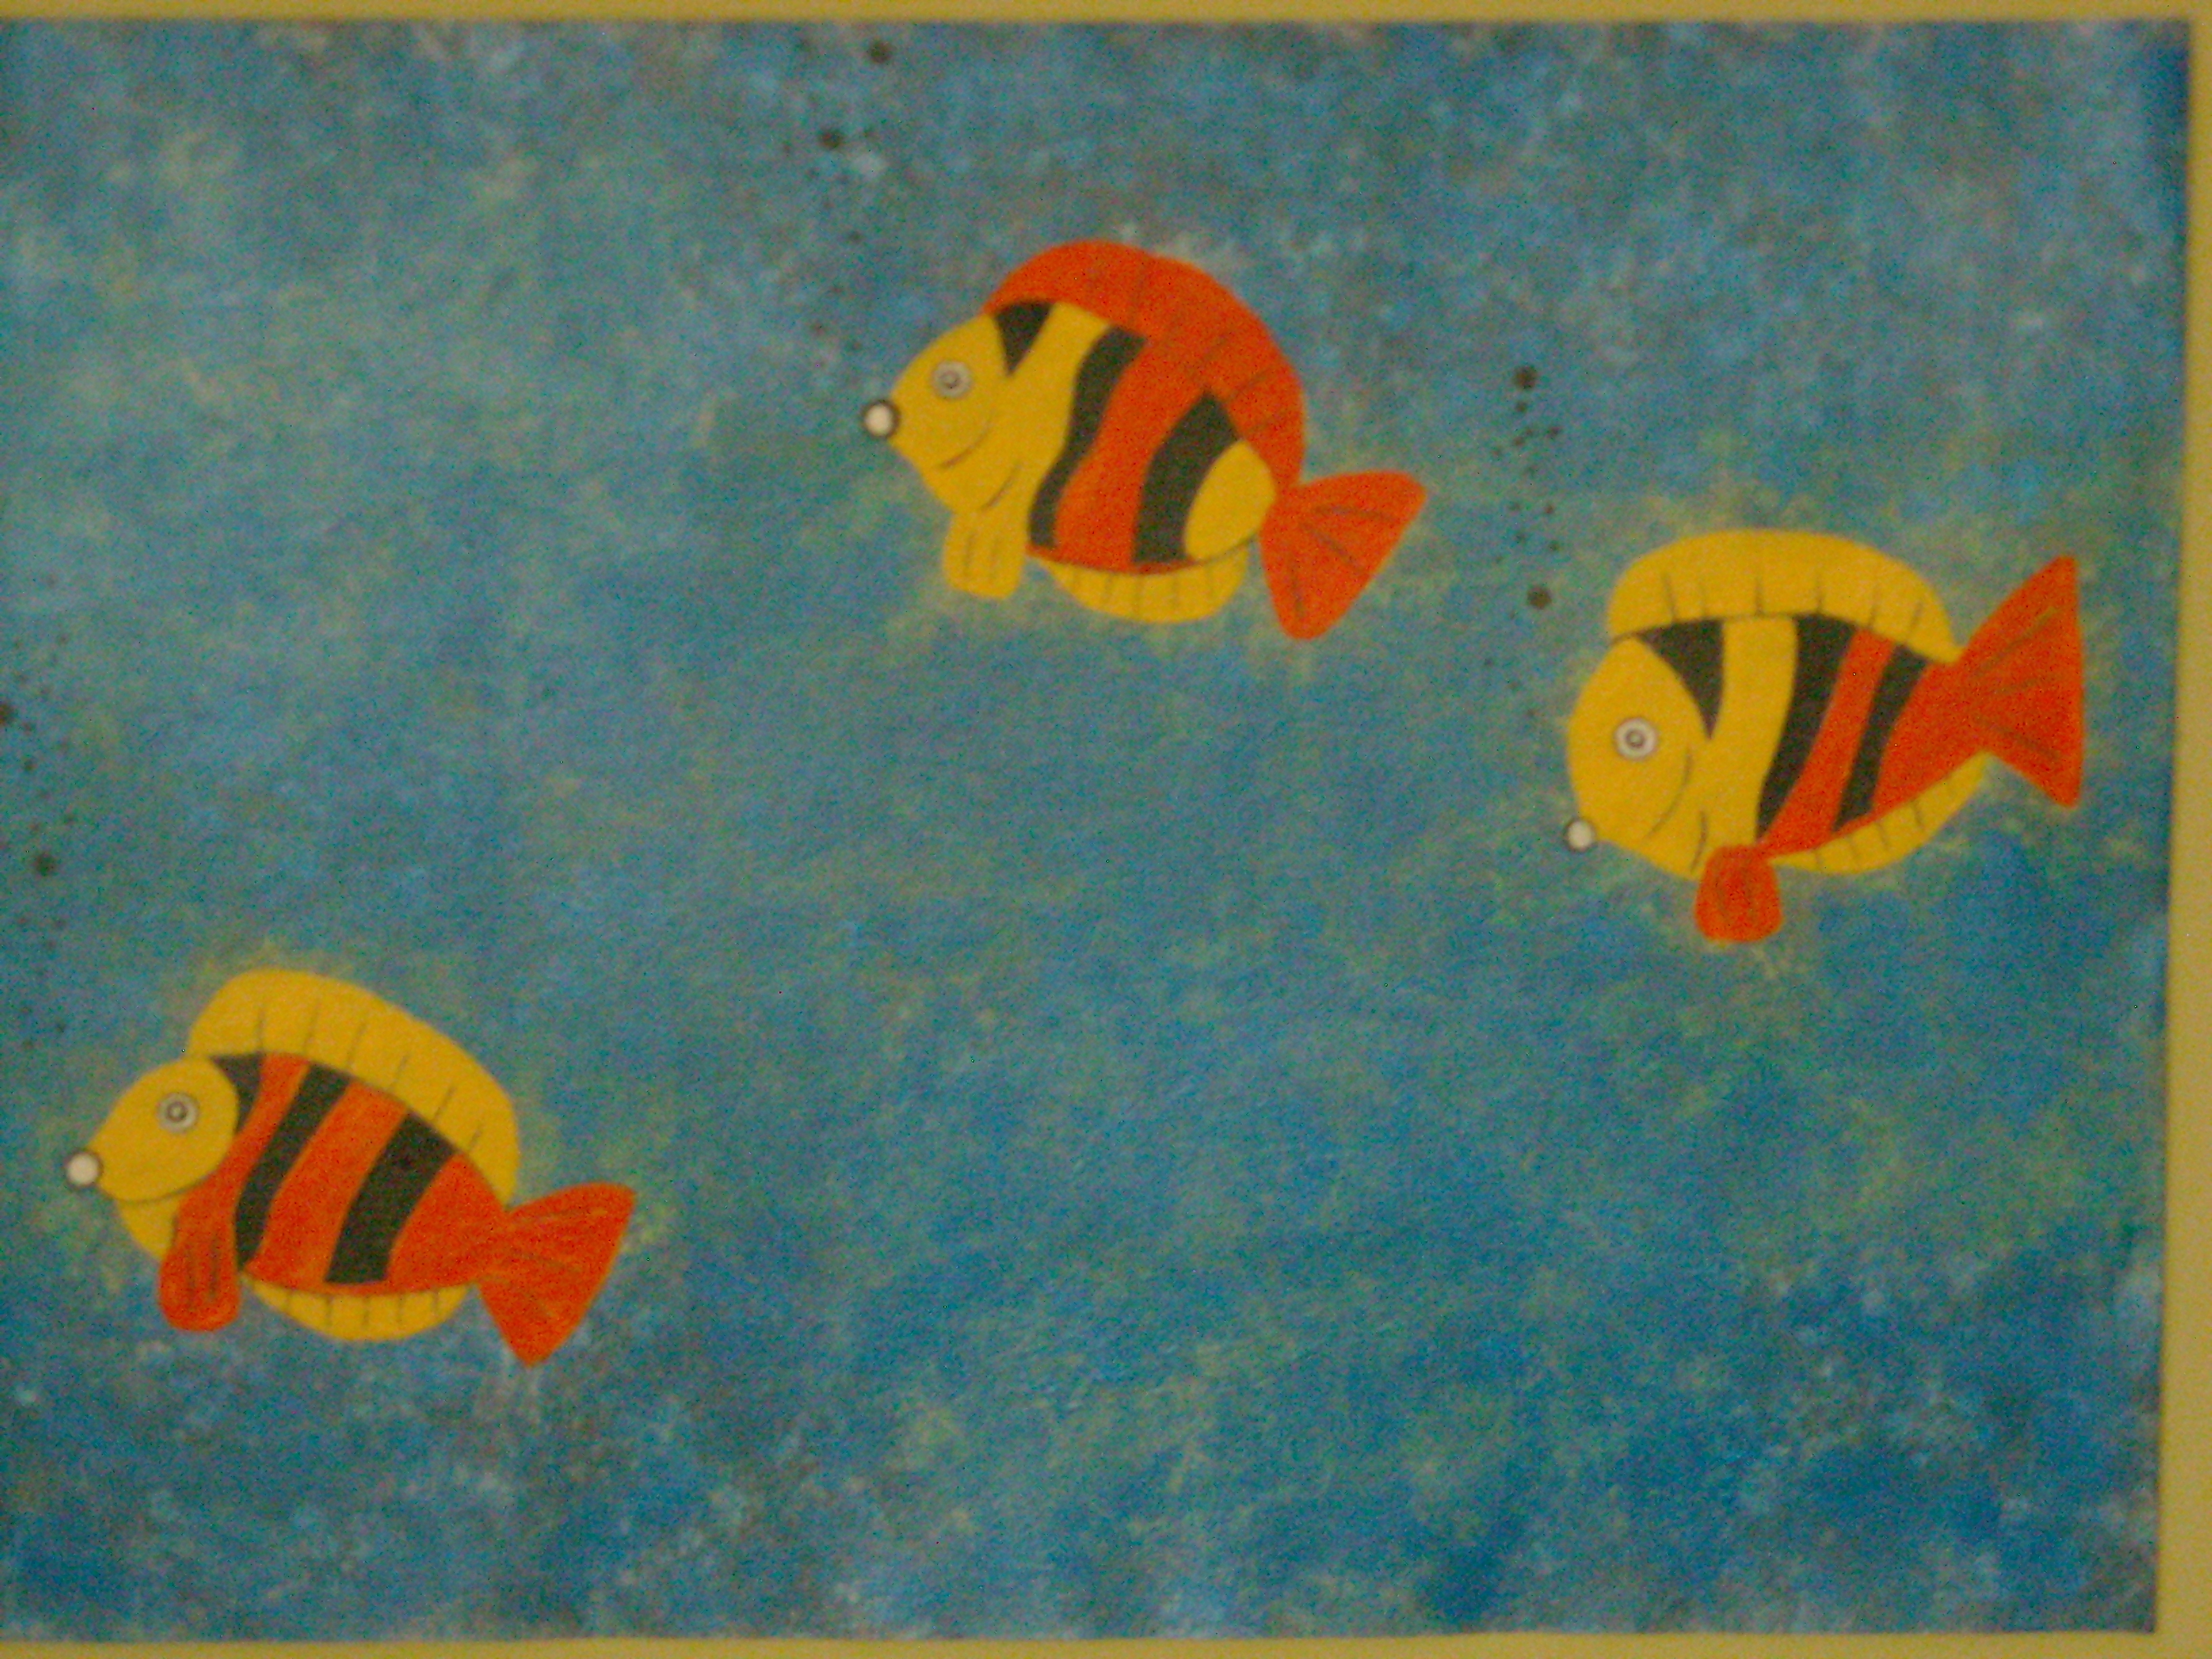 3 Fish, floor cloth, 2x3, $65